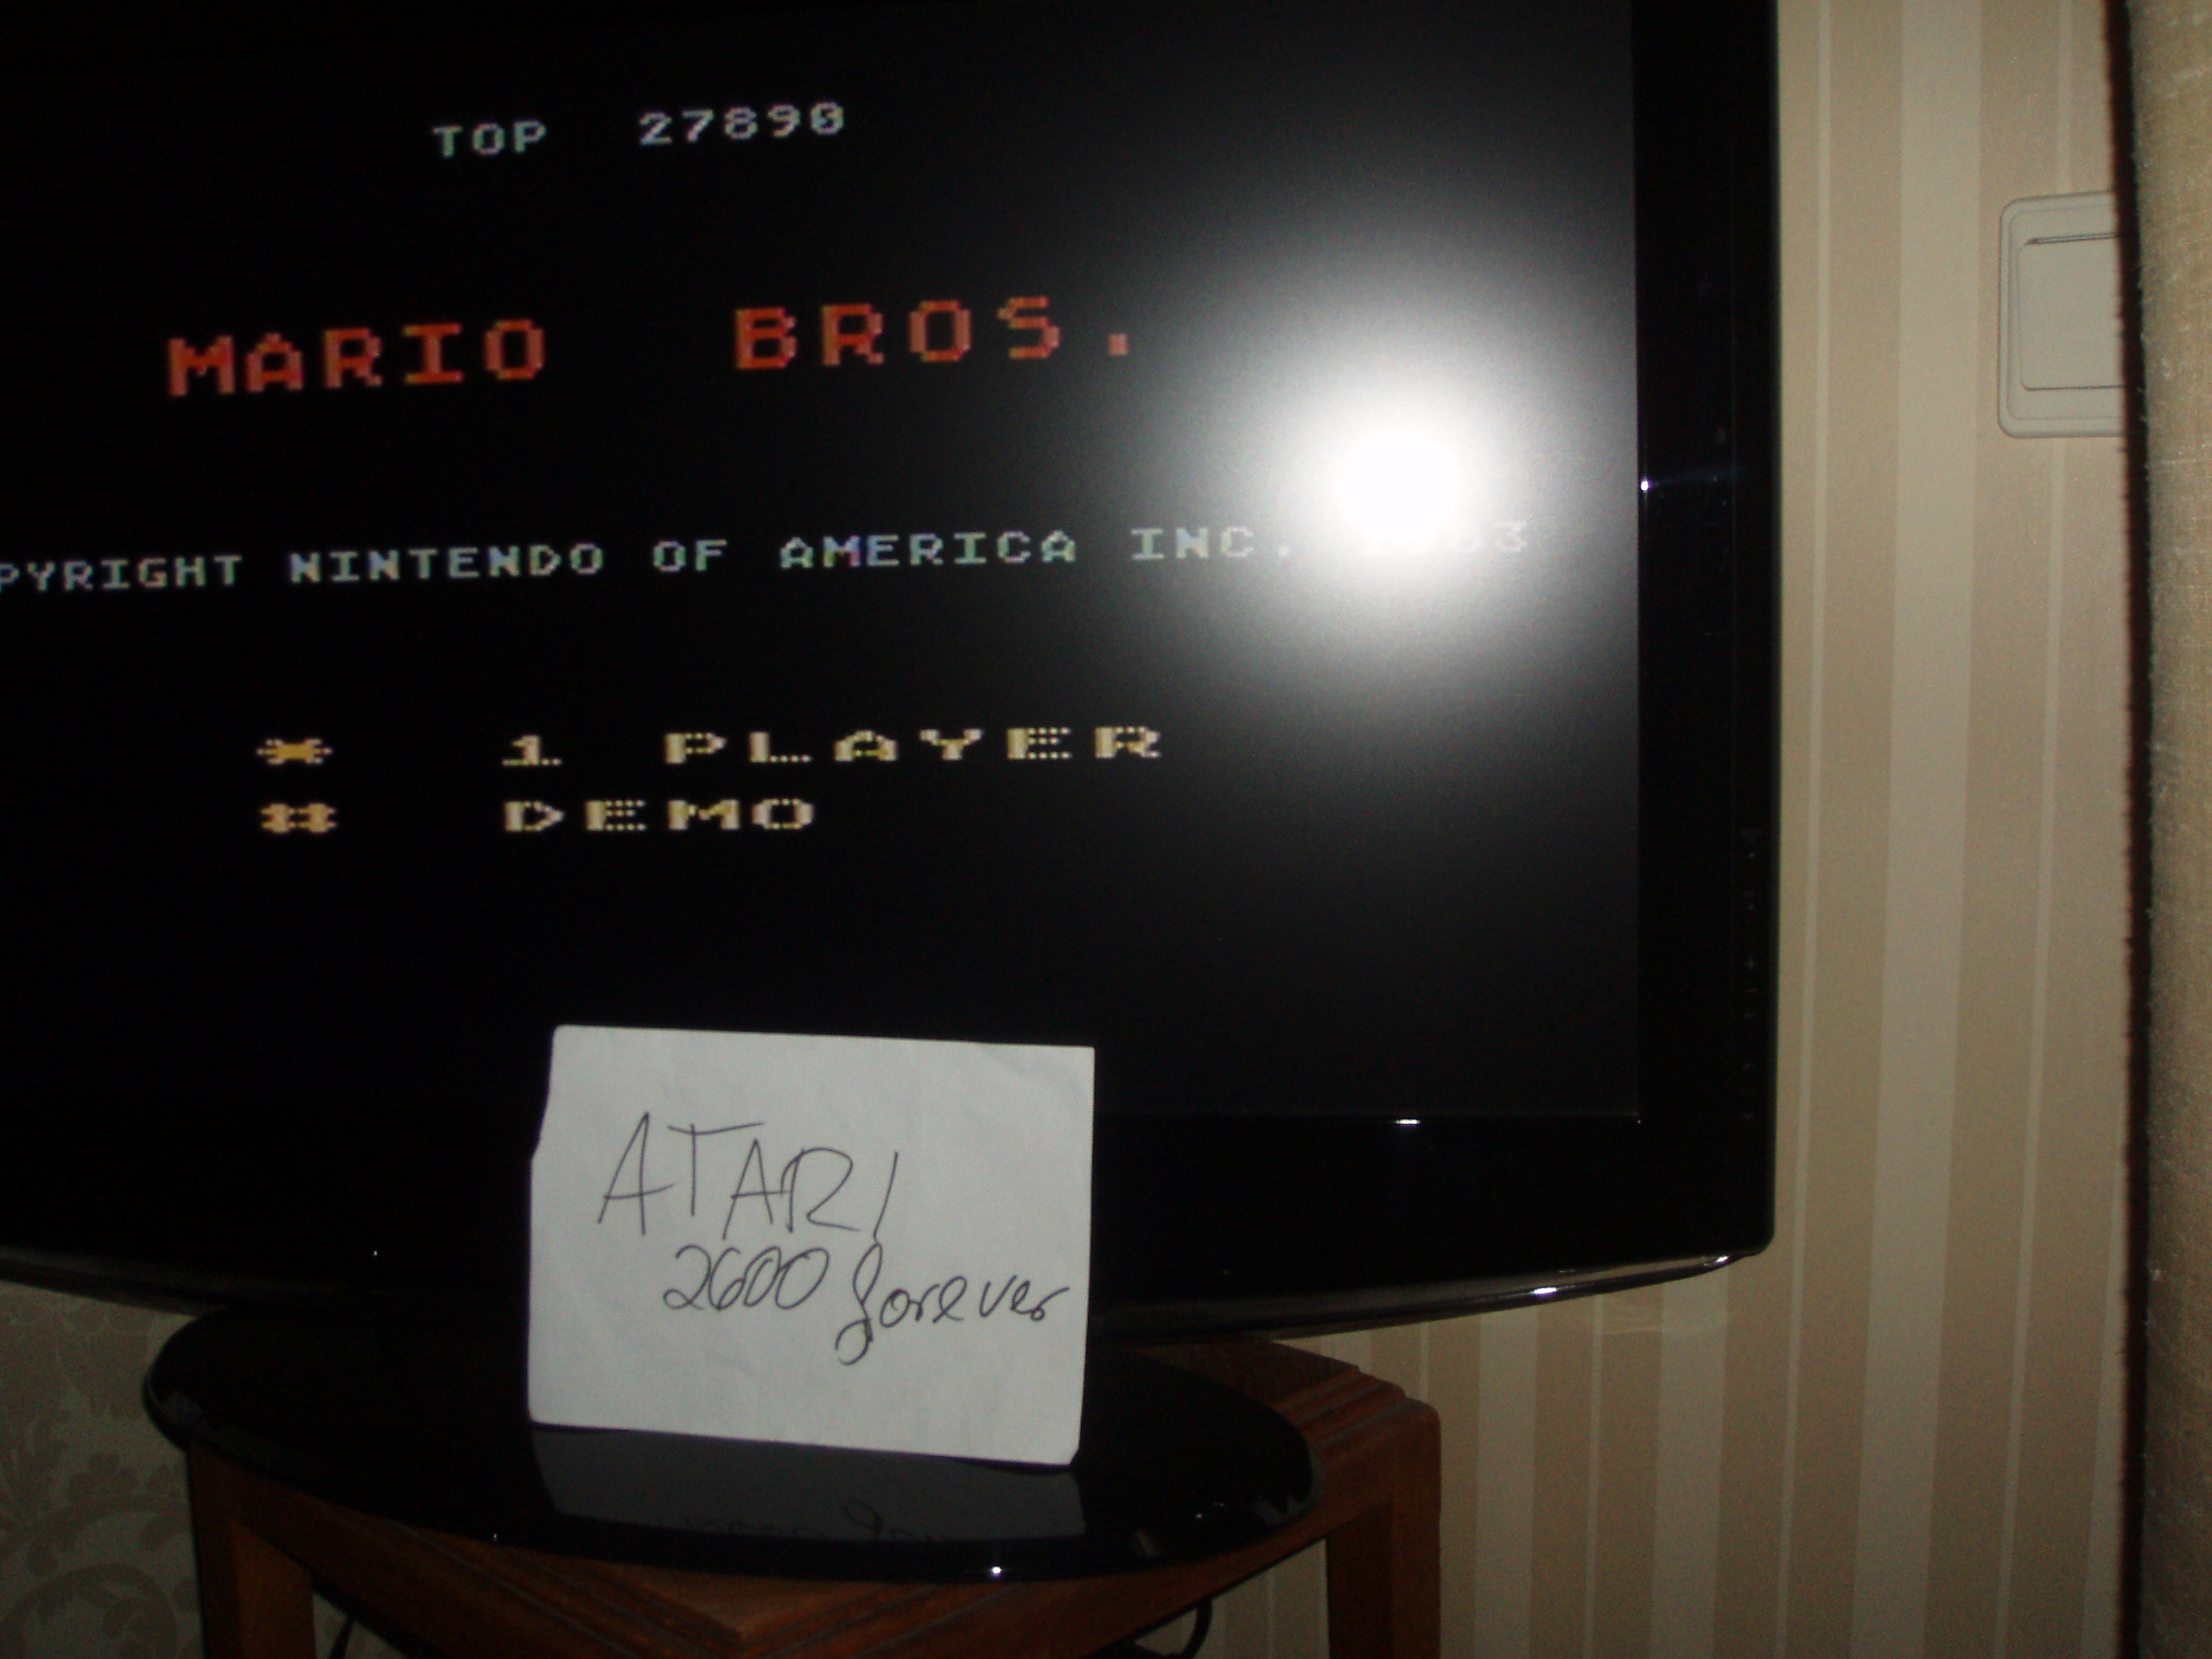 Mario Bros 27,890 points